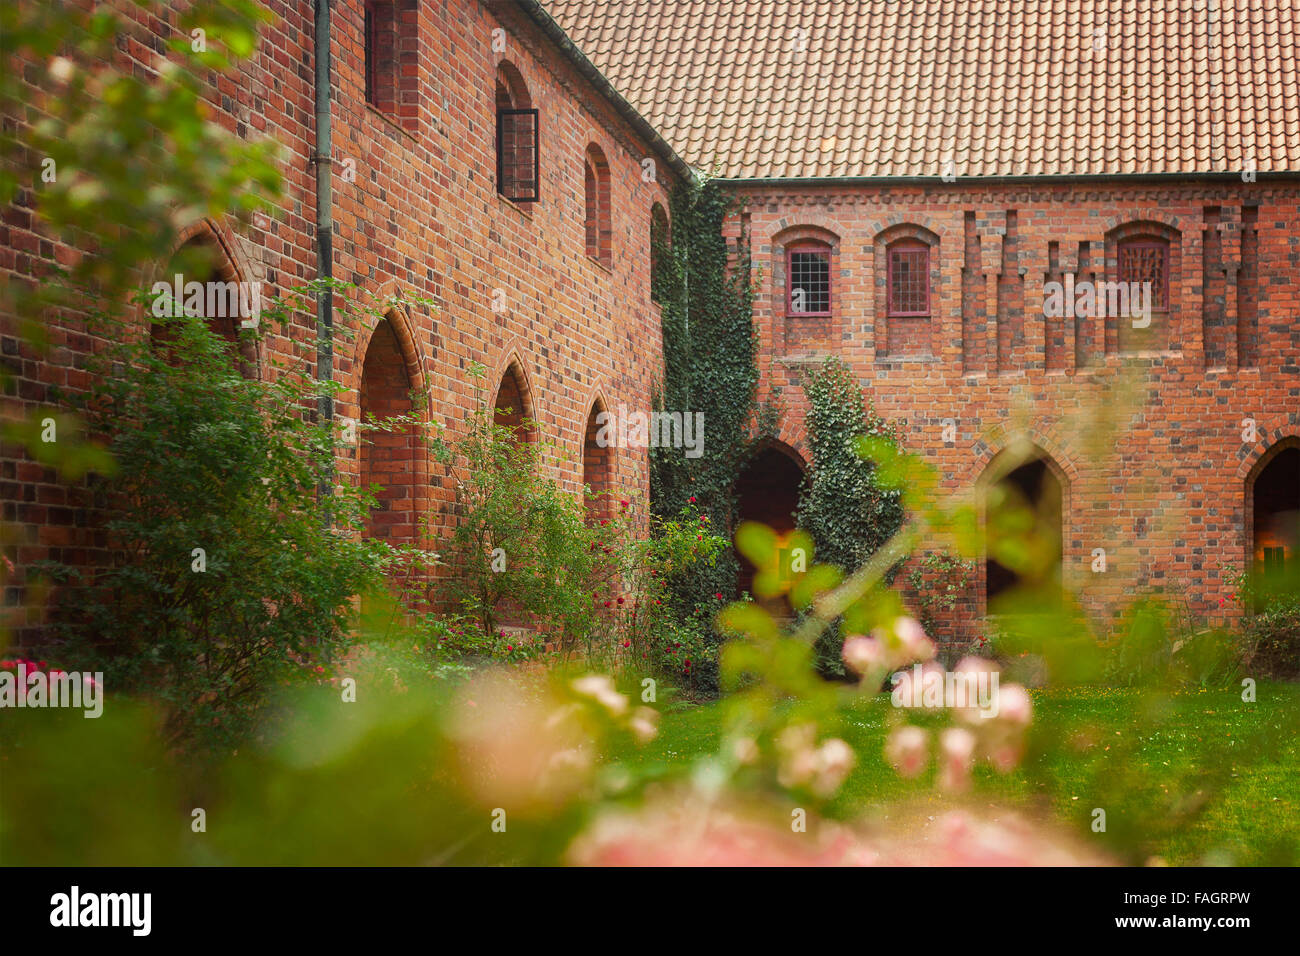 Image of the enclosed garden of the old Carmelite priory in Helsingor, Denmark. - Stock Image